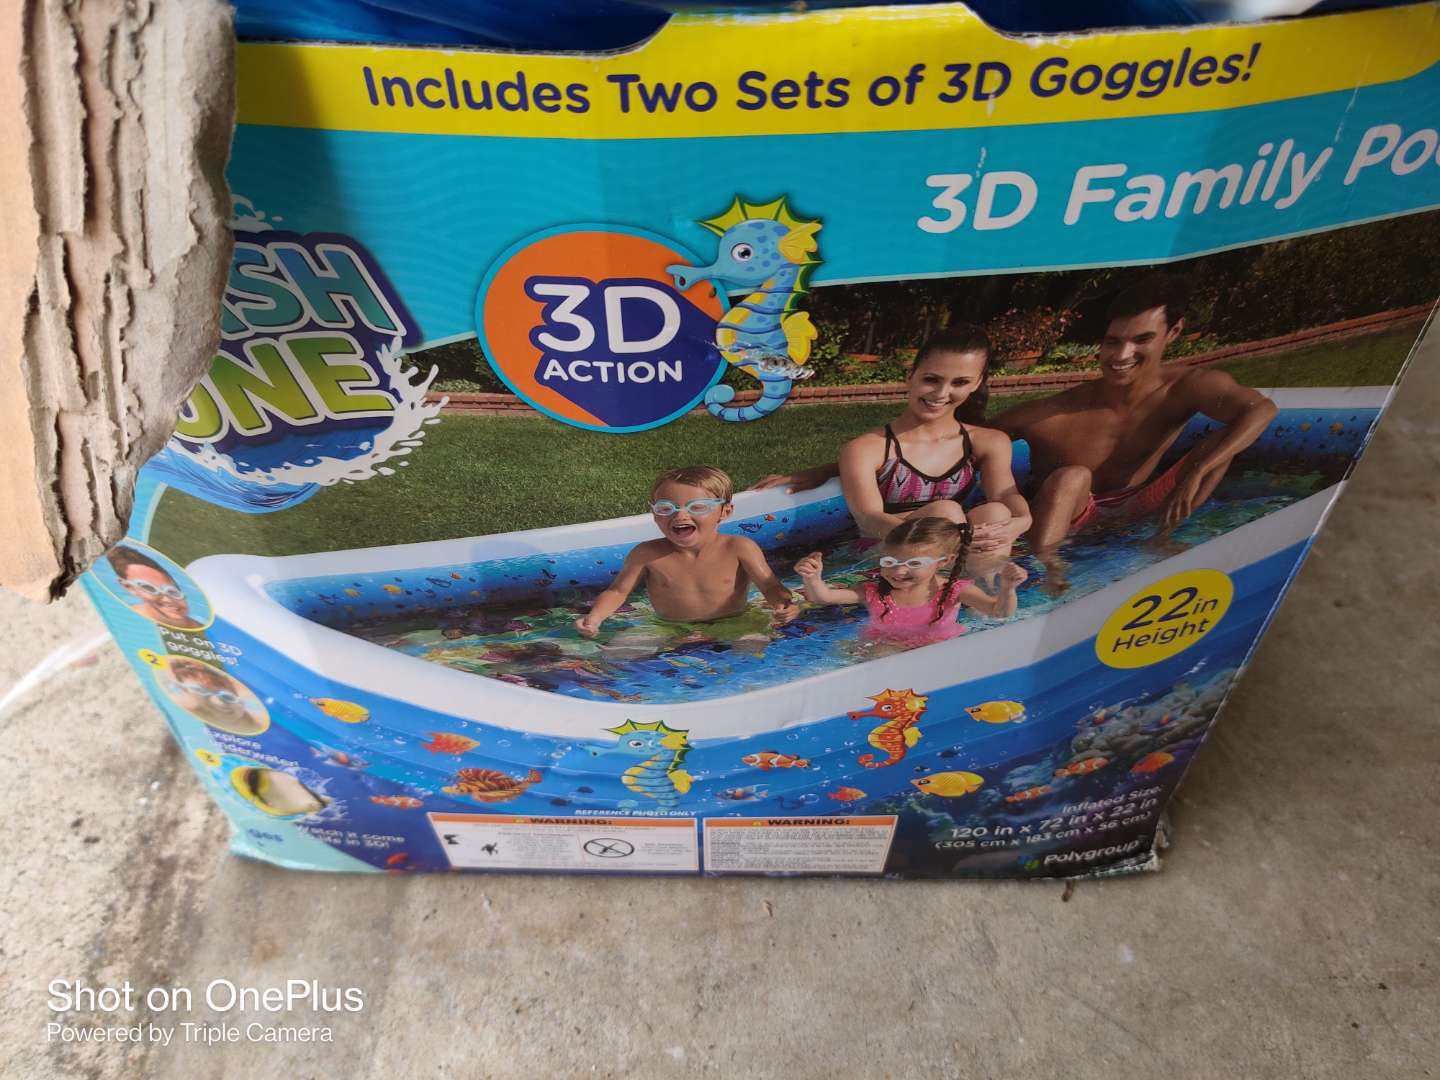 395 flash zone 3D family pool